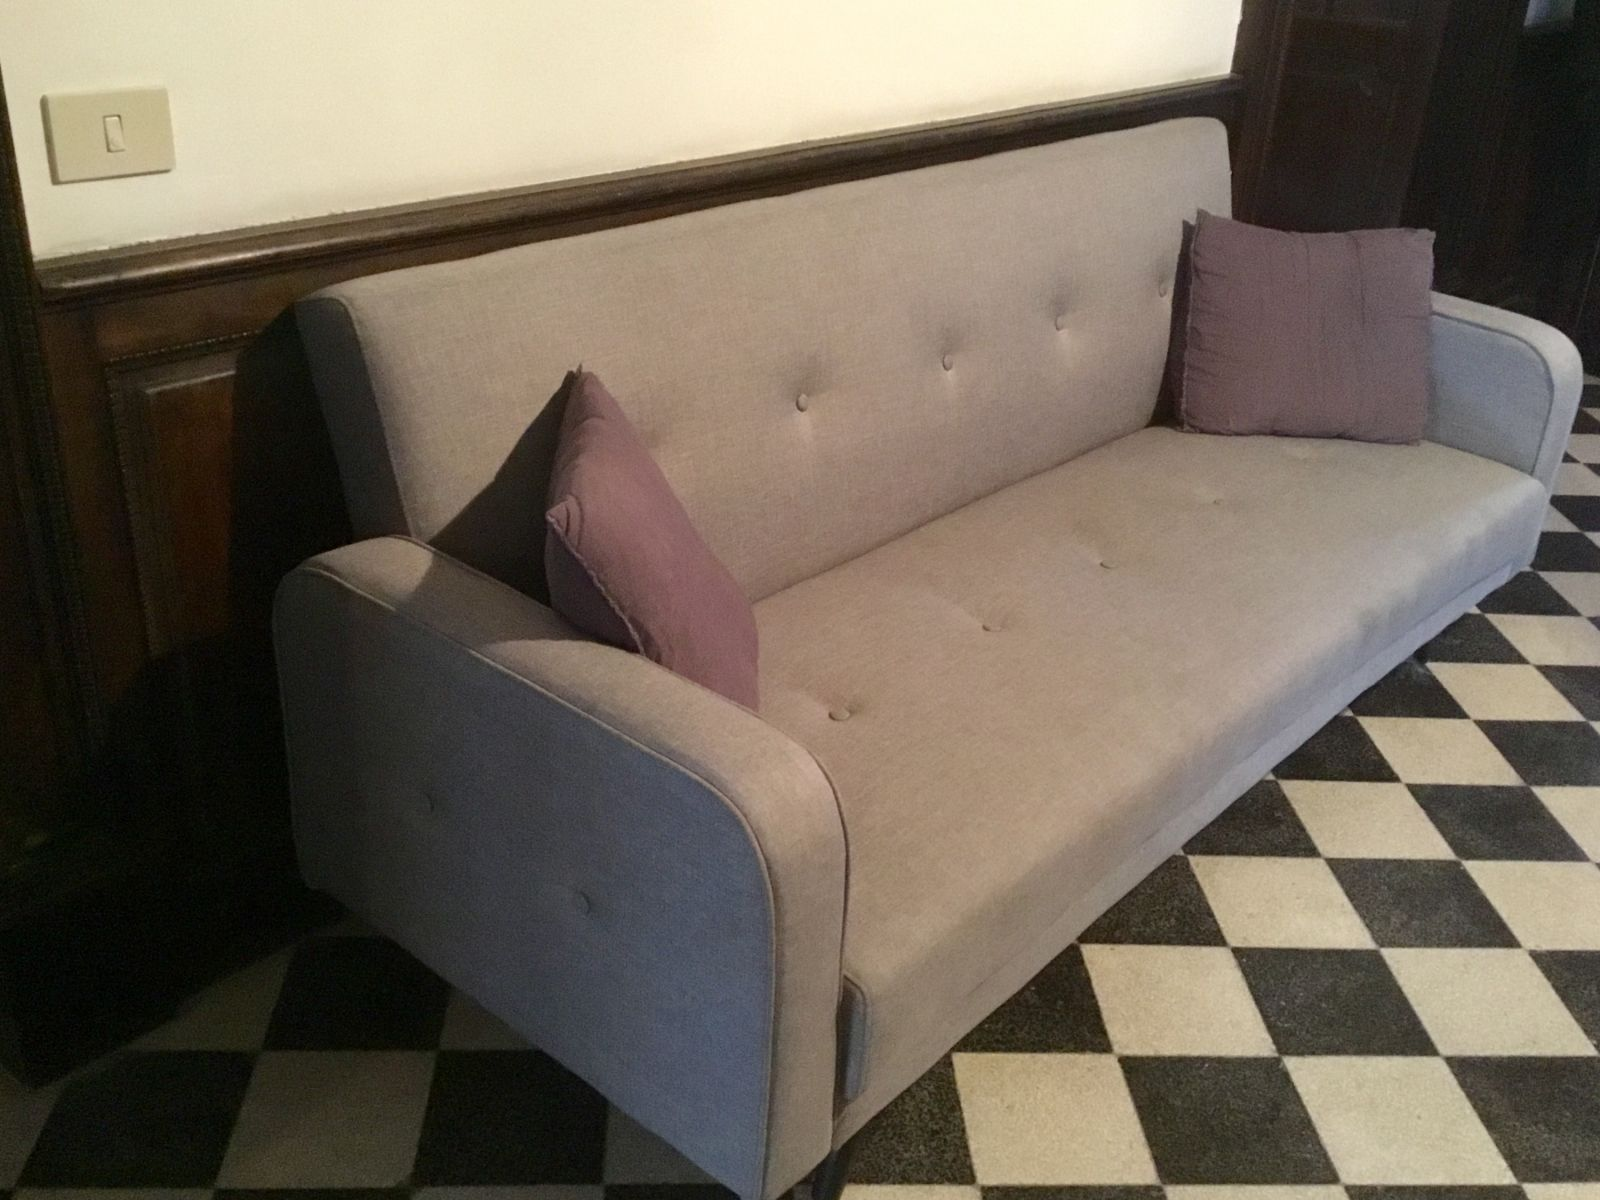 Cuscino Alla Francese Ikea grey sleeper couch for sale - wanted in rome